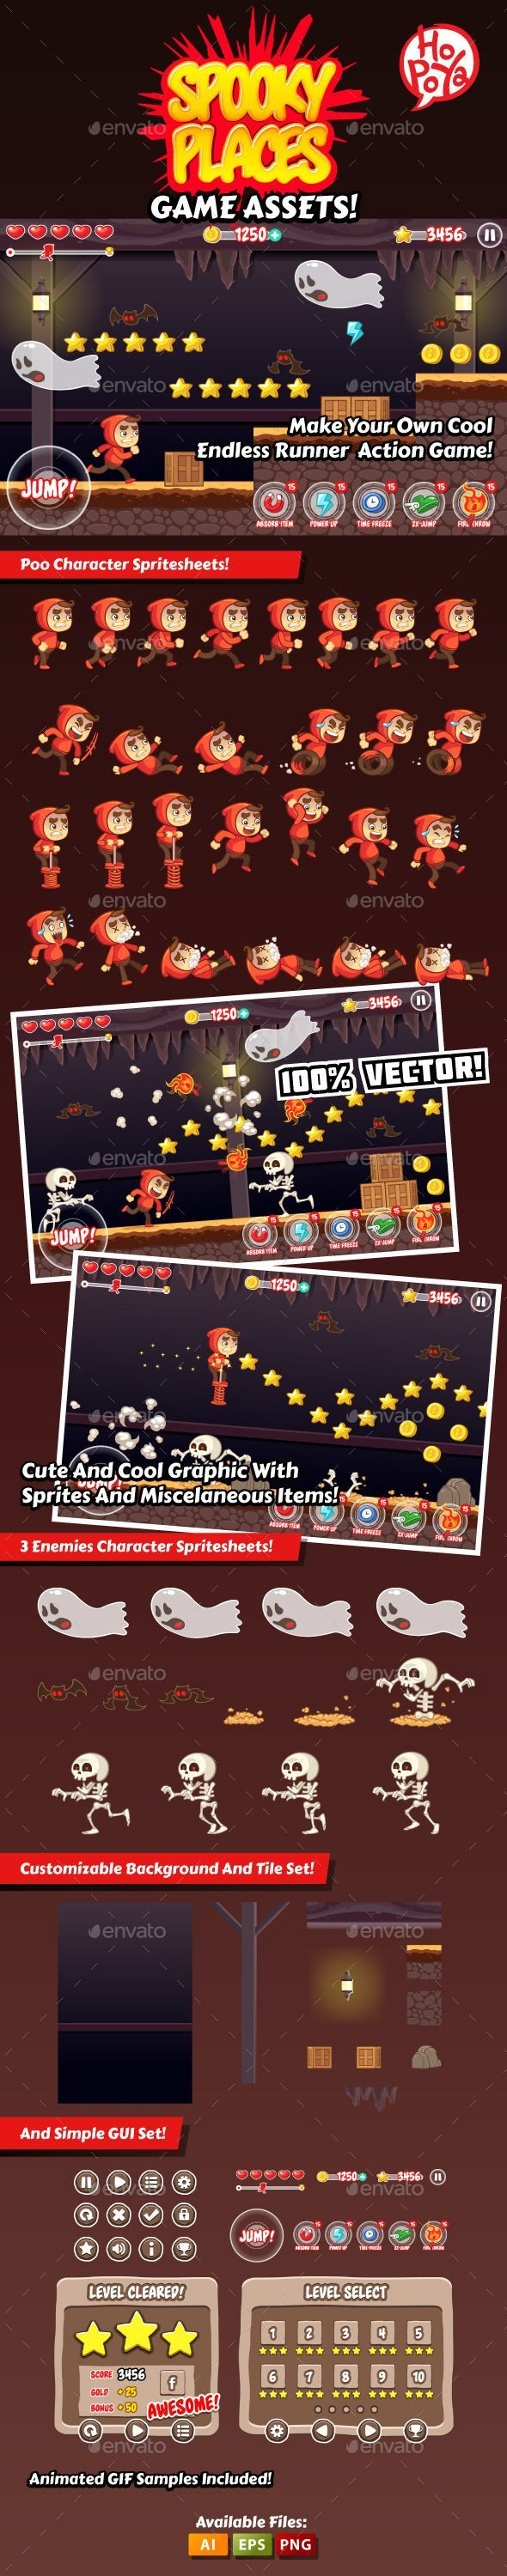 #modern #Spooky #Places #Game #Asset #Template - Game #Kits Game #Assets #design. download here: https://graphicriver.net/item/spooky-places-game-assets/9068866?ref=yinkira